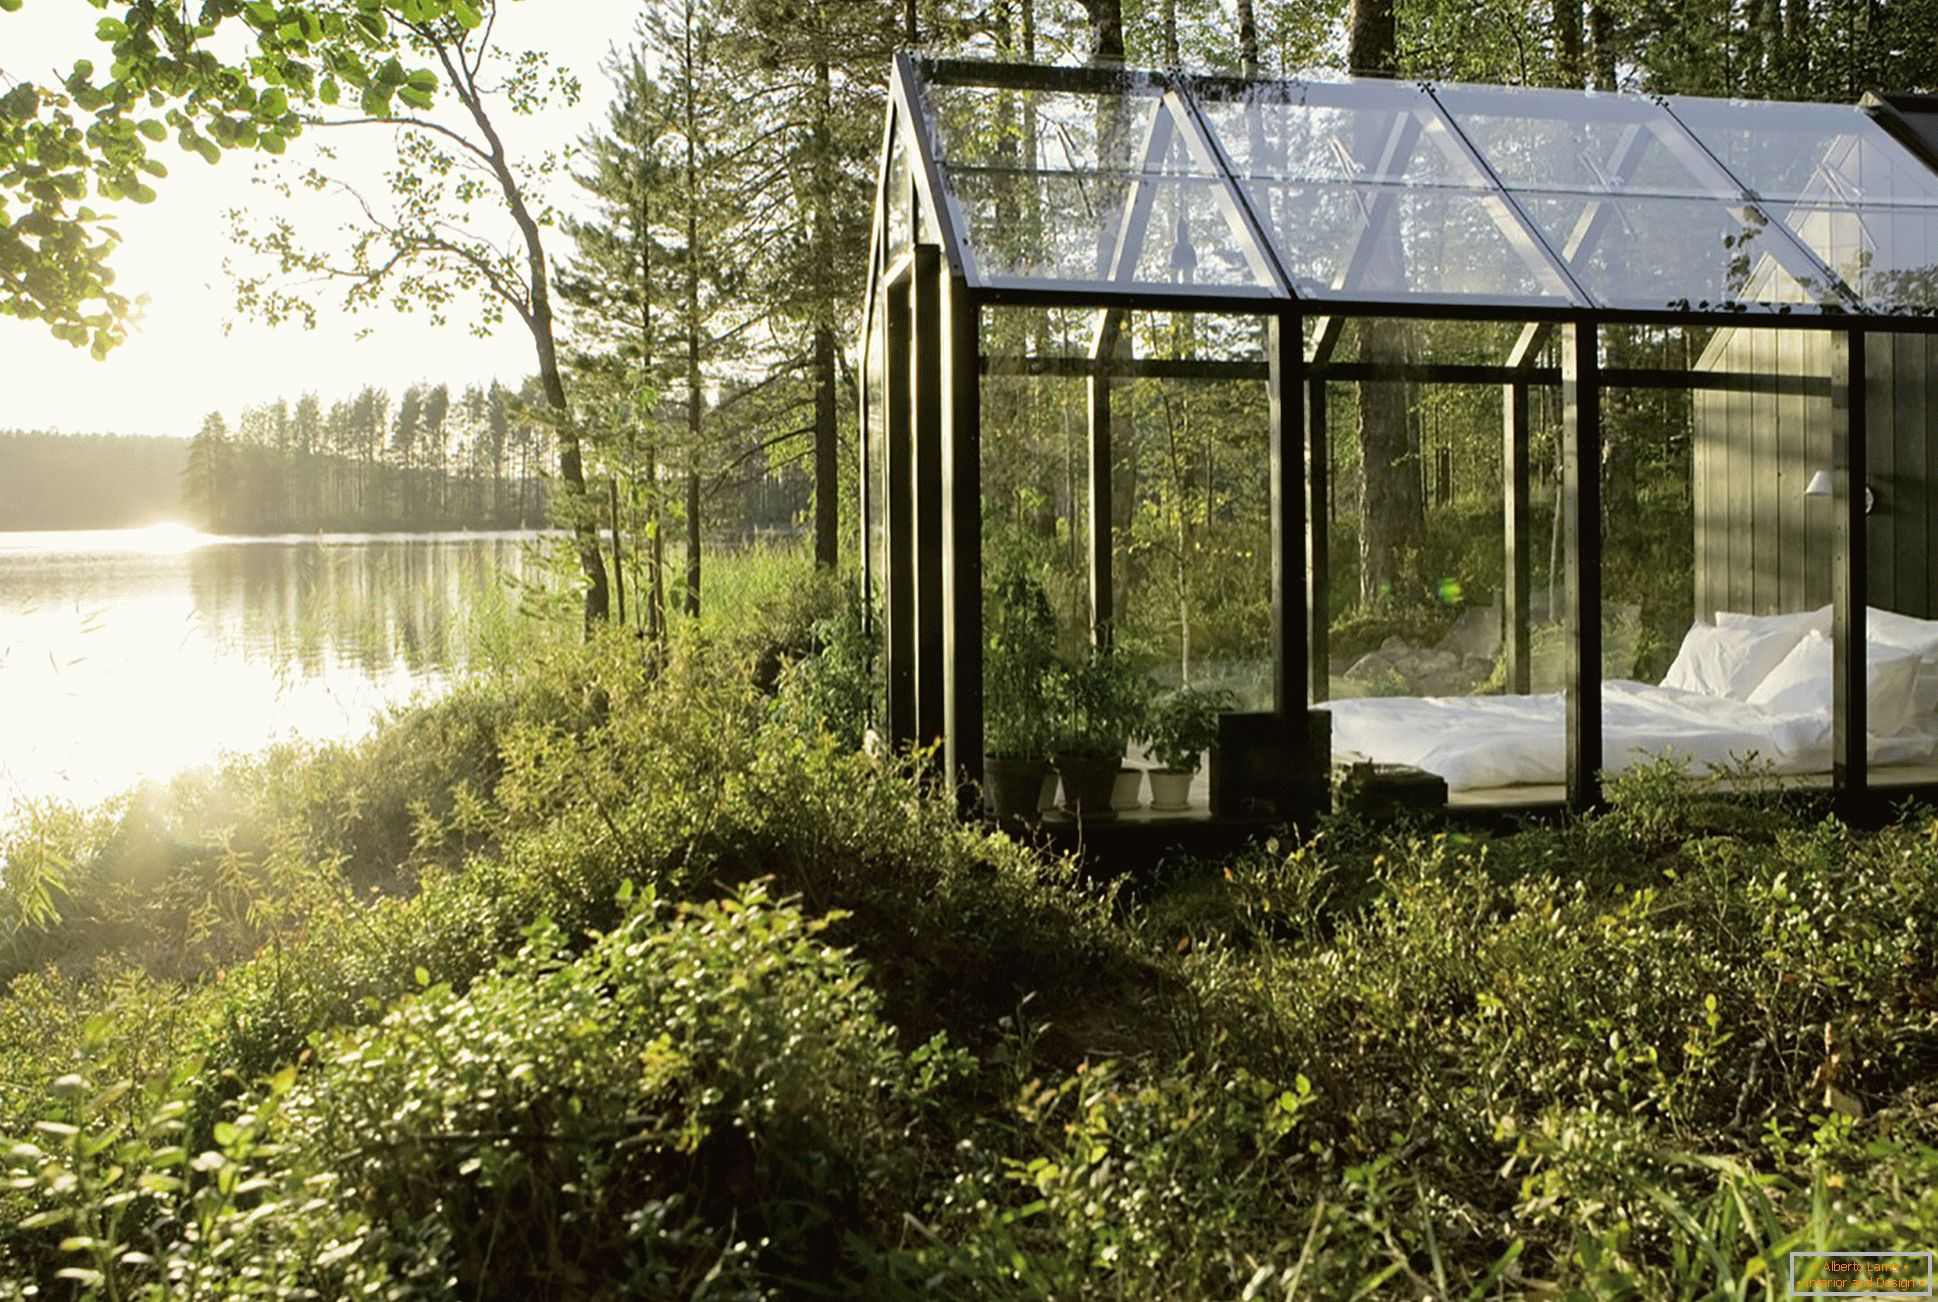 Design of a greenhouse in the middle of the forest